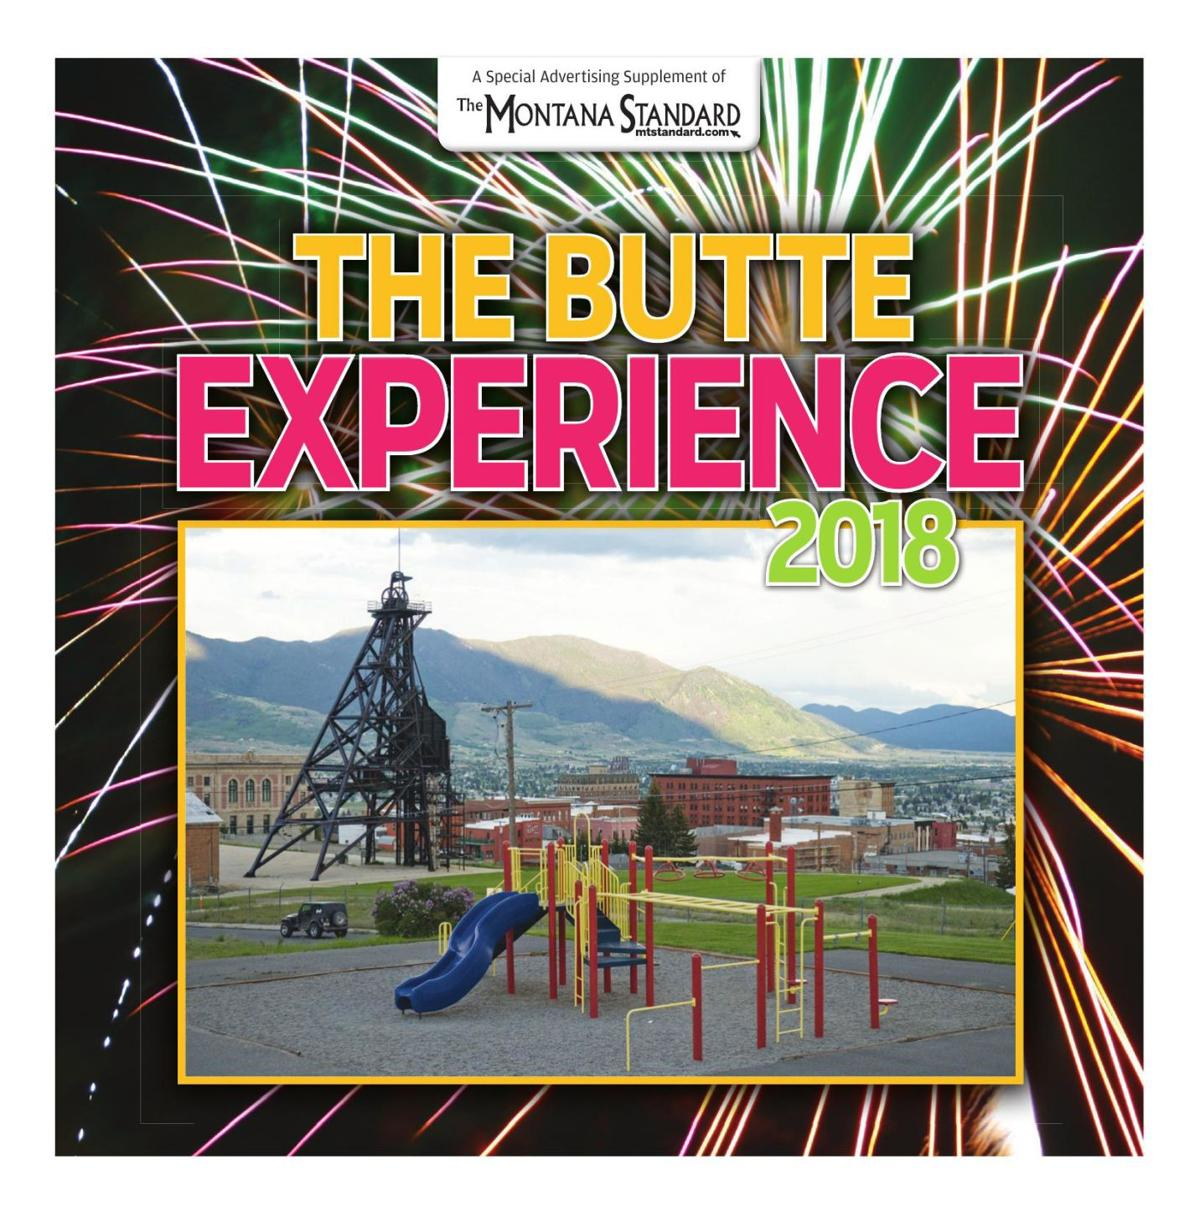 The Butte Experience - April 7, 2018